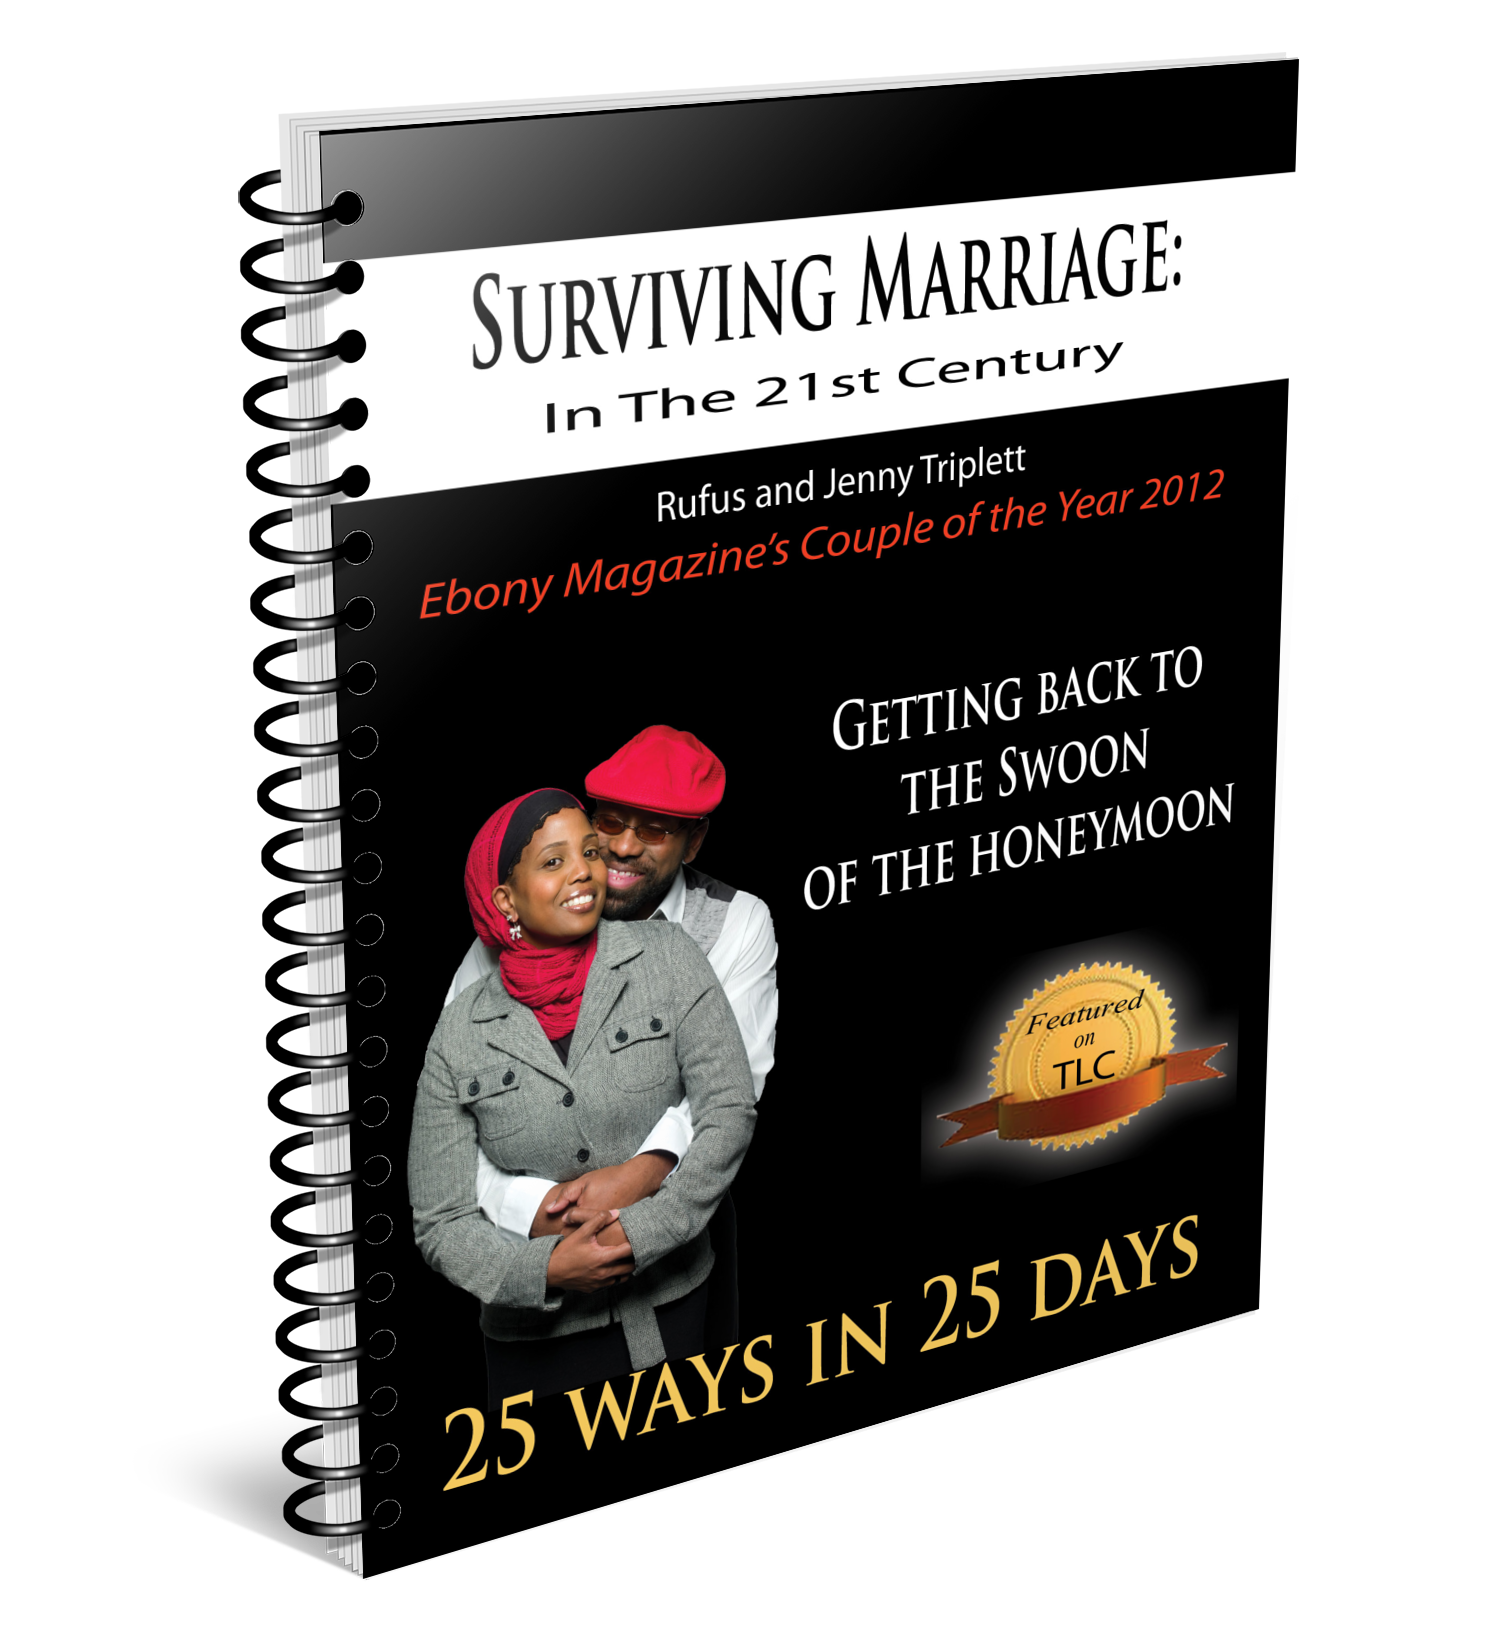 Surviving Marriage Tips book on Survivig Marriage.com, surviving marriage, how to get back to the swoon of the honeymoon